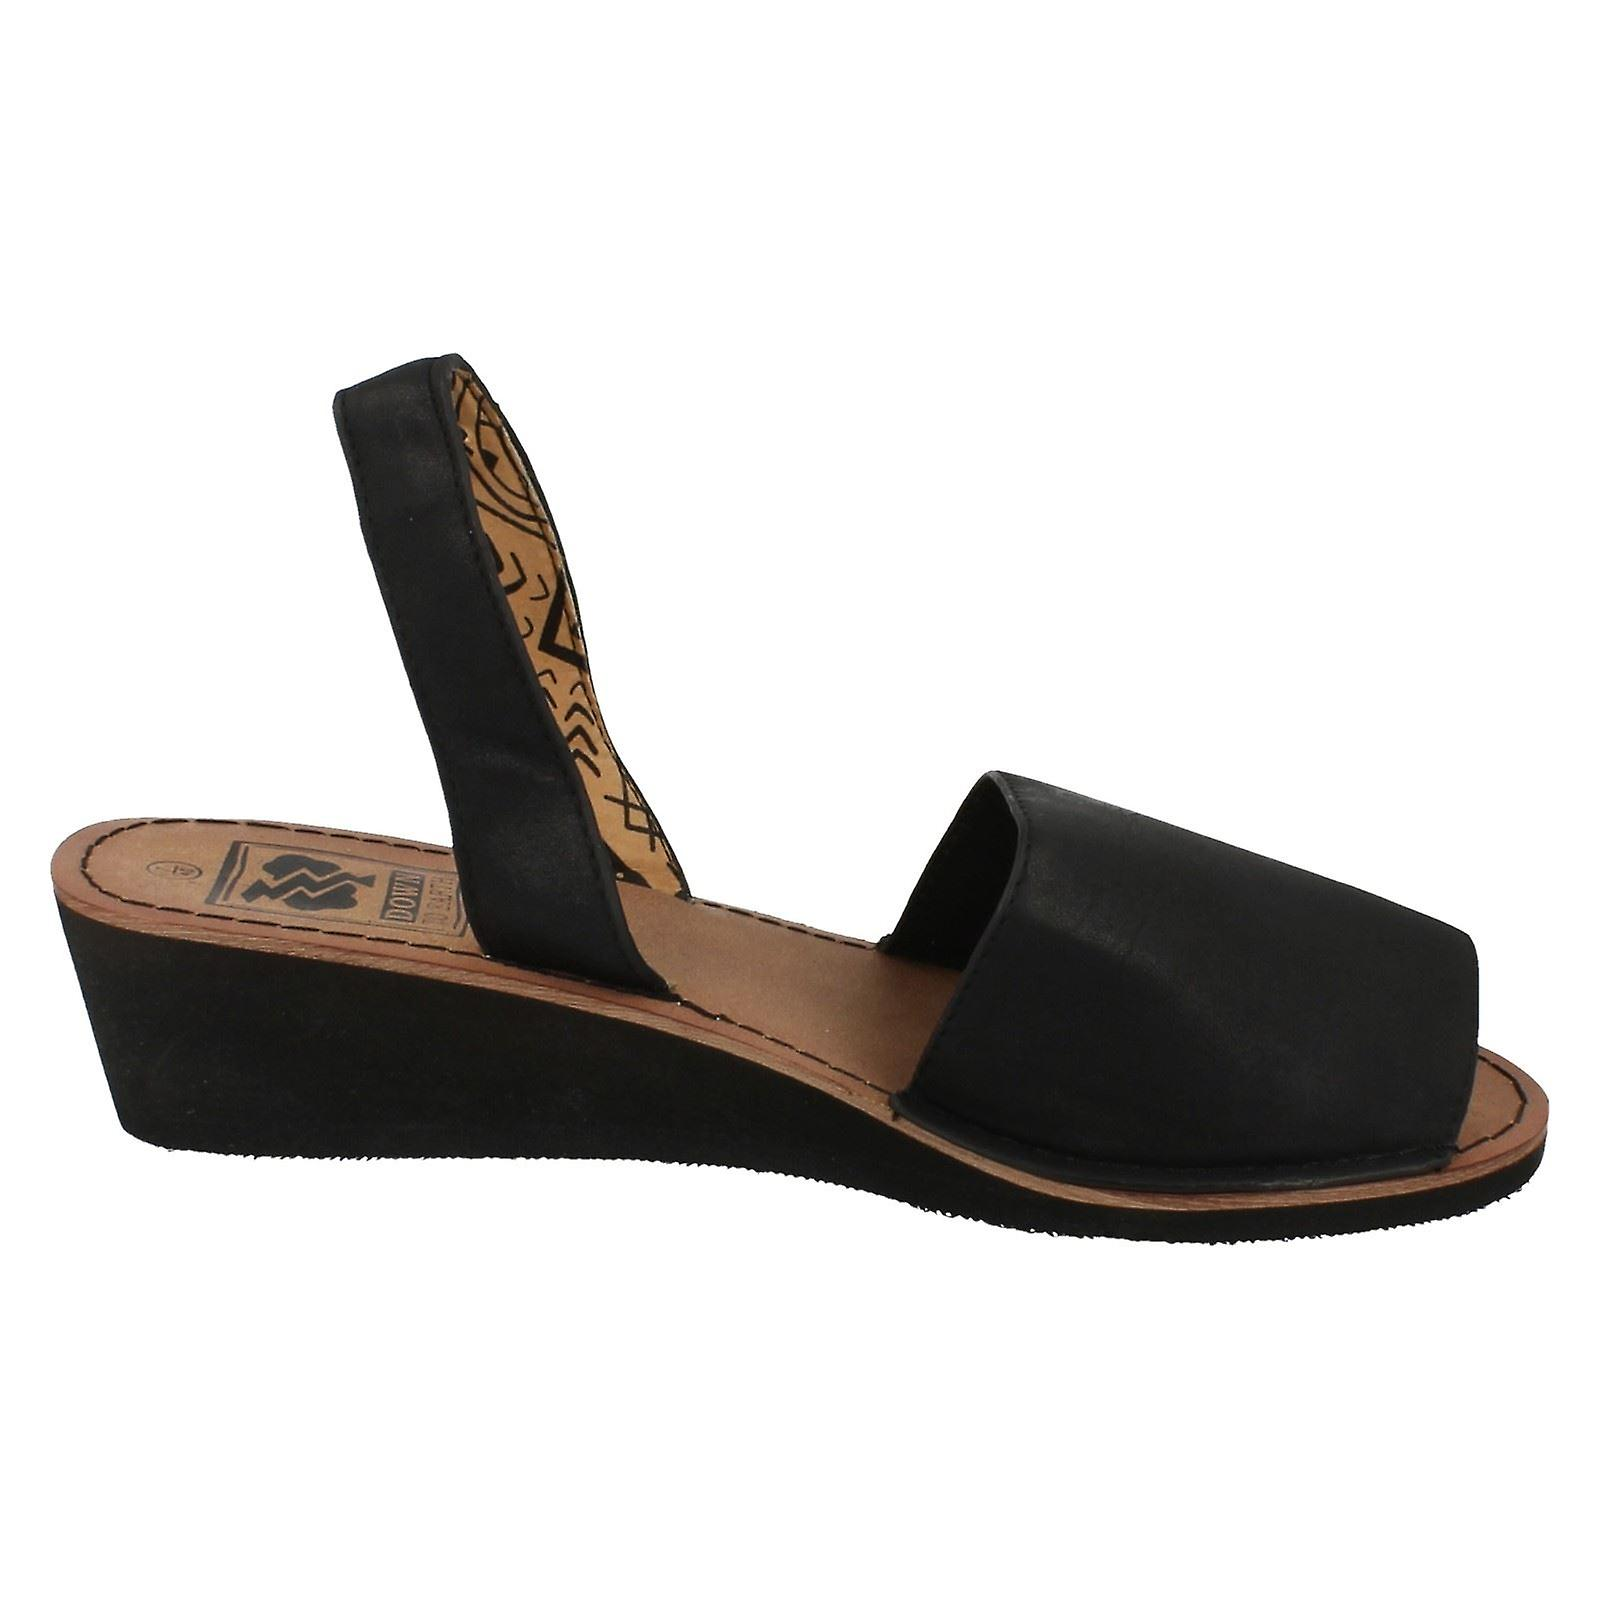 Mesdames, Down to Earth milieu Wedge Mule Slingback Sandals F10234